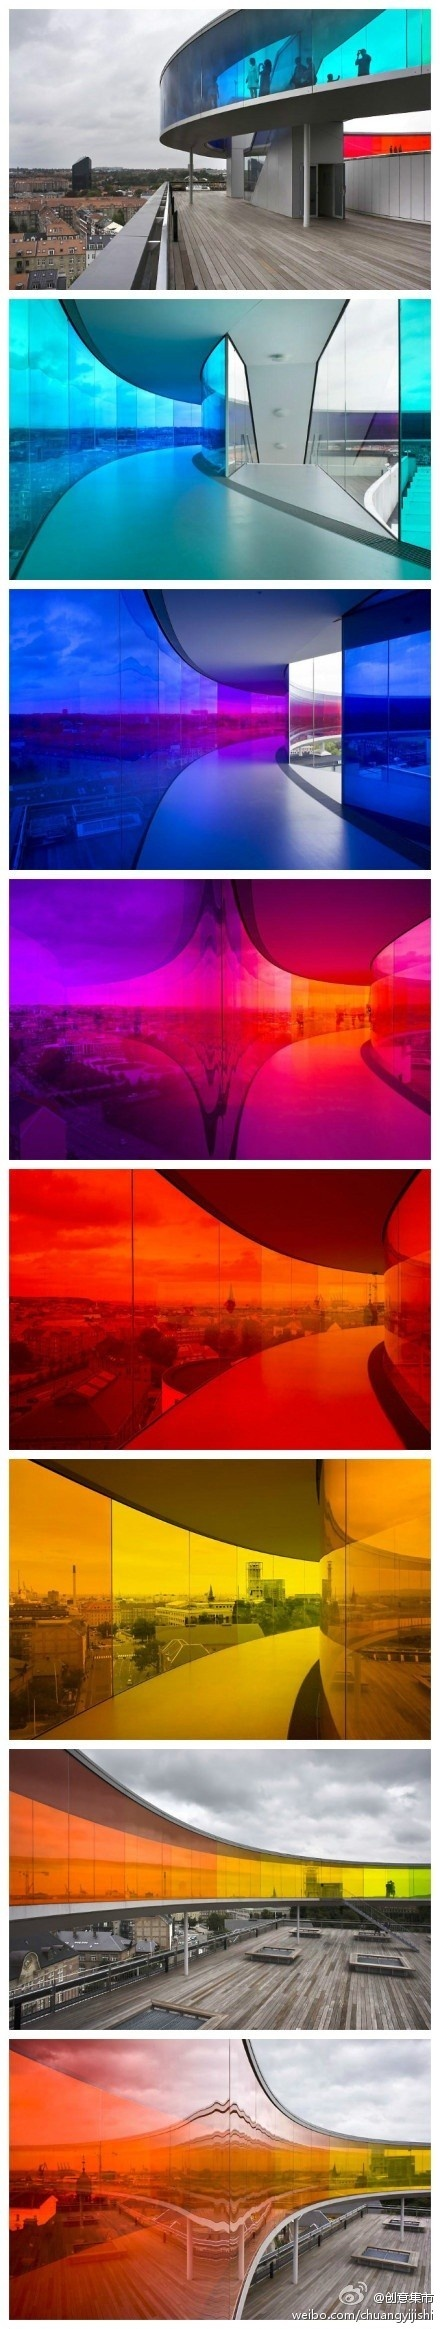 Your rainbow panorama u2013 by Olafur Eliasson. AROS, Aarhus, Denmark.  U always loved filters didnt you.  A panorama with a uncomplicated twist.